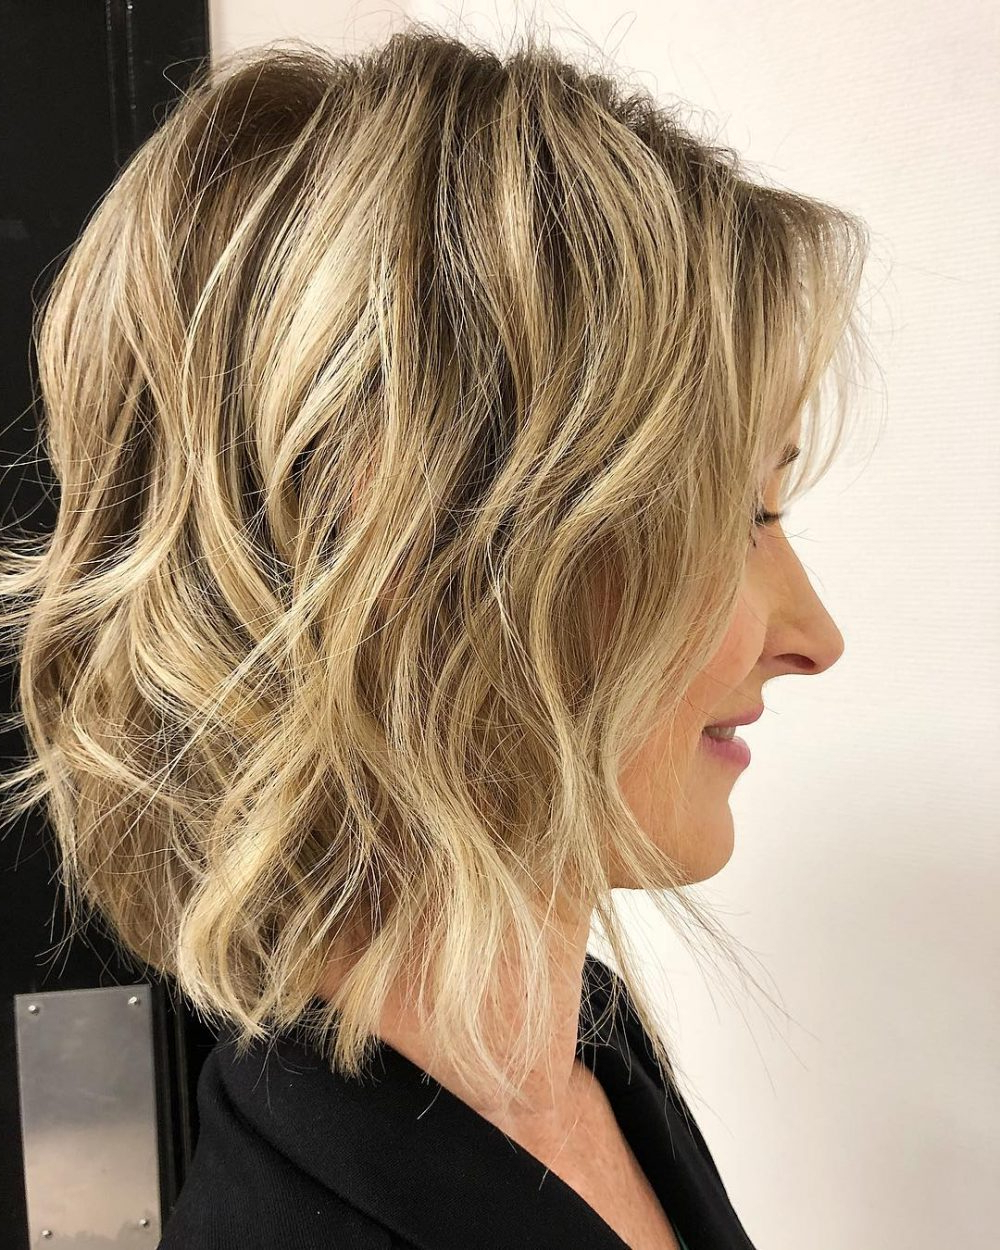 43 Perfect Short Hairstyles For Fine Hair In 2018 With Choppy Wispy Blonde Balayage Bob Hairstyles (View 6 of 20)